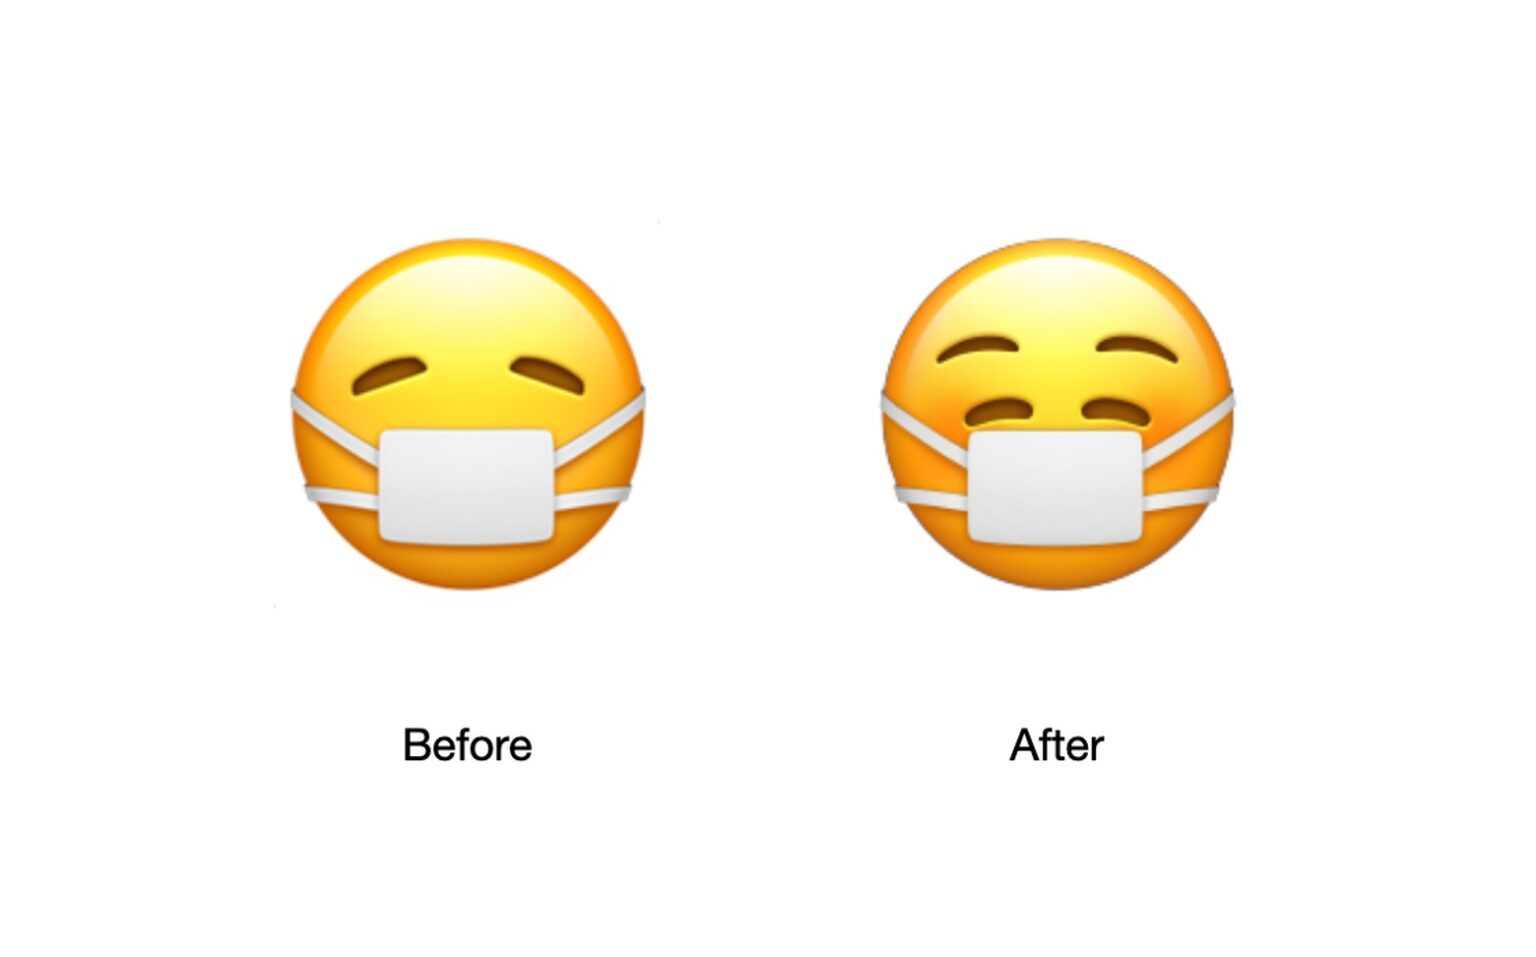 The mask-wearing emoji has a smile on its face. Apparently